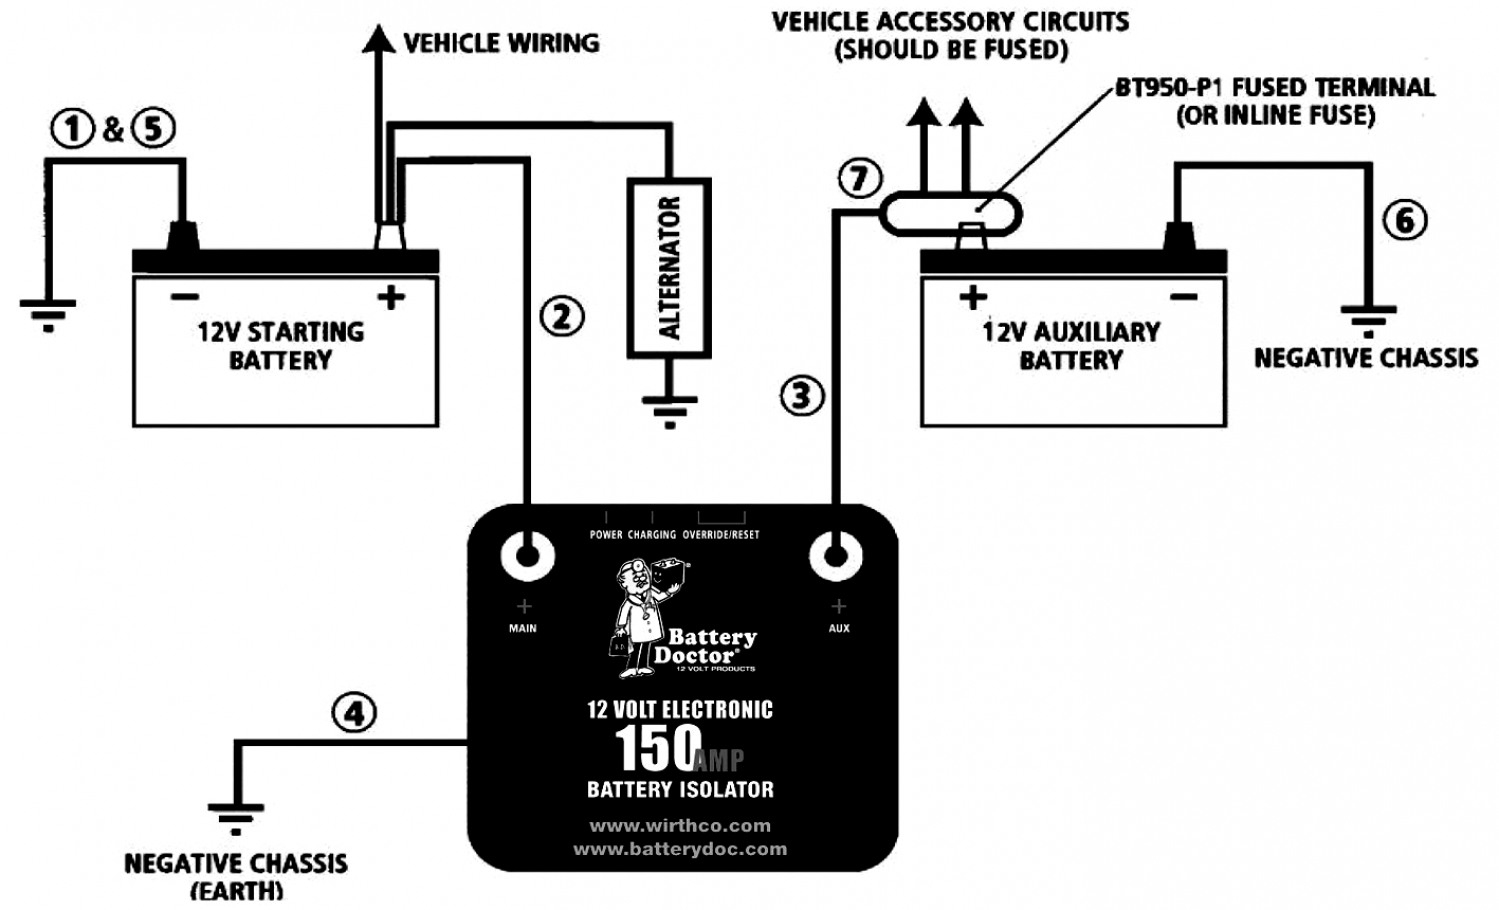 99 Chevy Battery Isolator Wiring - All Wiring Diagram Data - 12V Battery Isolator Wiring Diagram